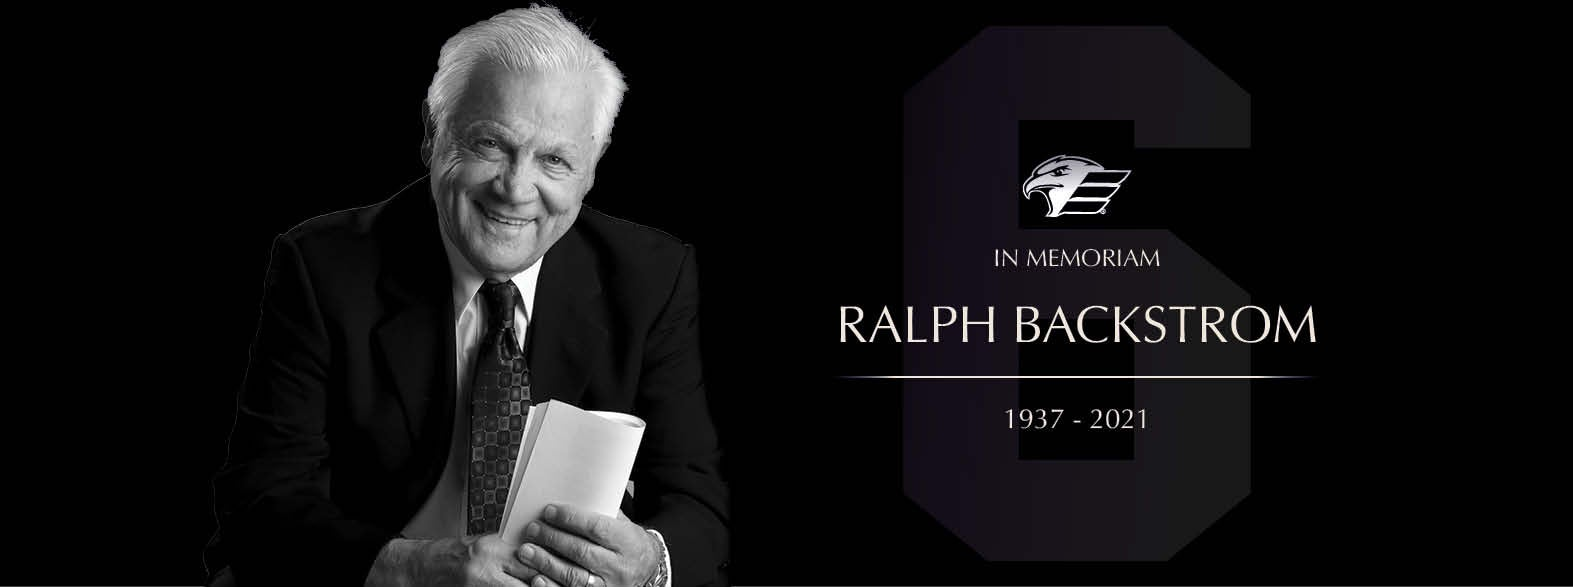 Remembering Ralph Backstrom